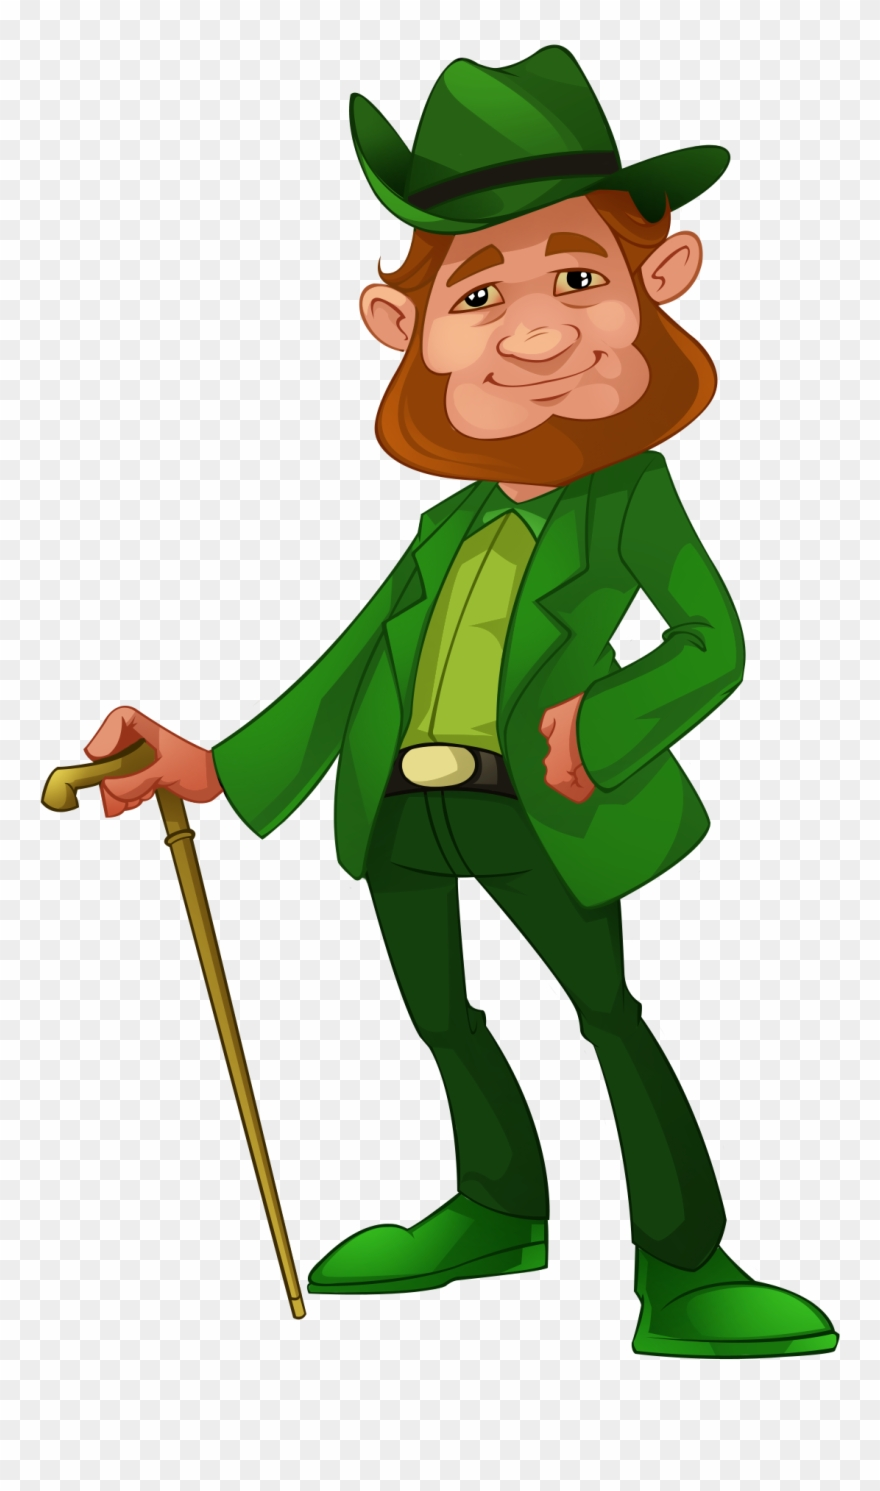 Irish Man Walking Apparel Clipart (#2434456).